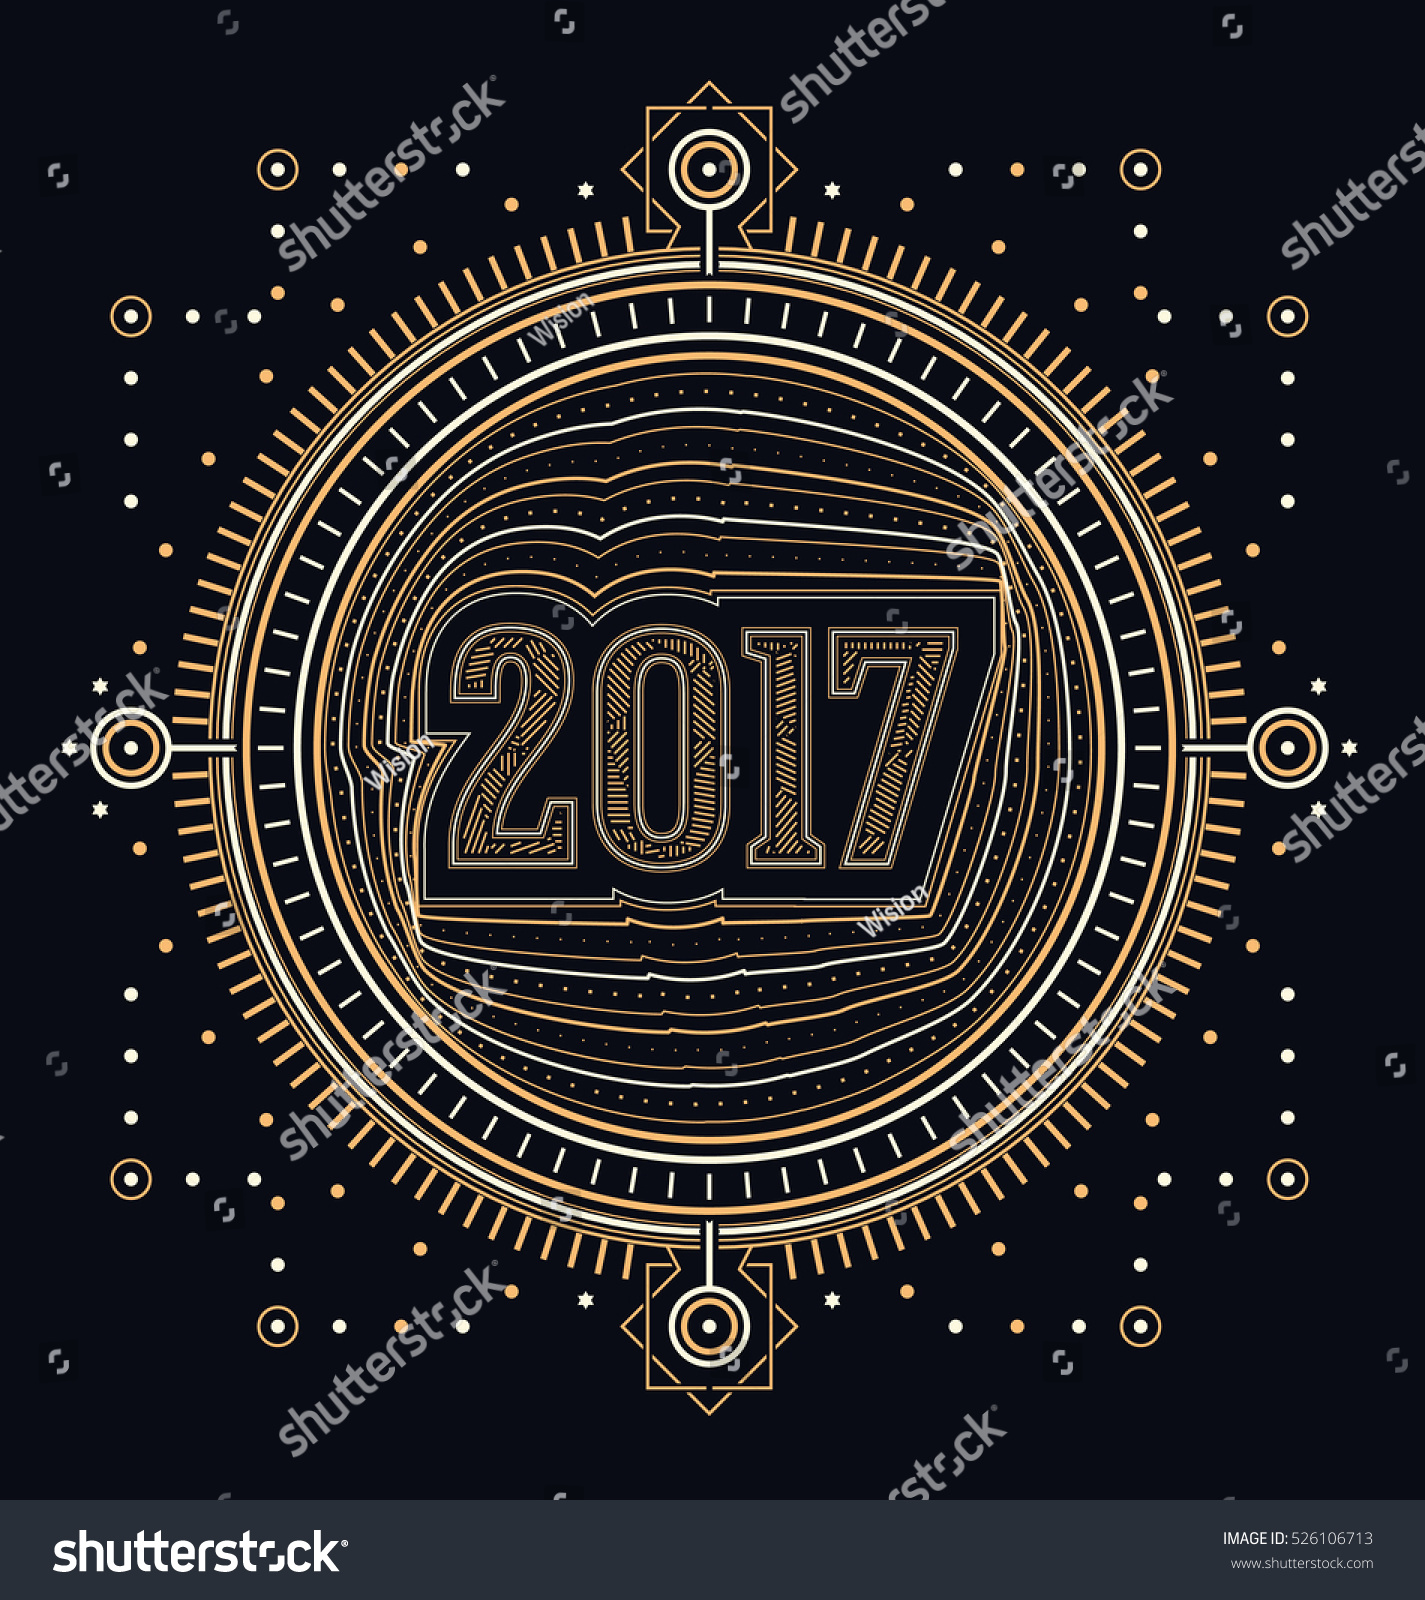 2017 calligraphic new year greeting design stock vector 526106713 2017 calligraphic new year greeting design sacred style gold and white lines design on kristyandbryce Choice Image